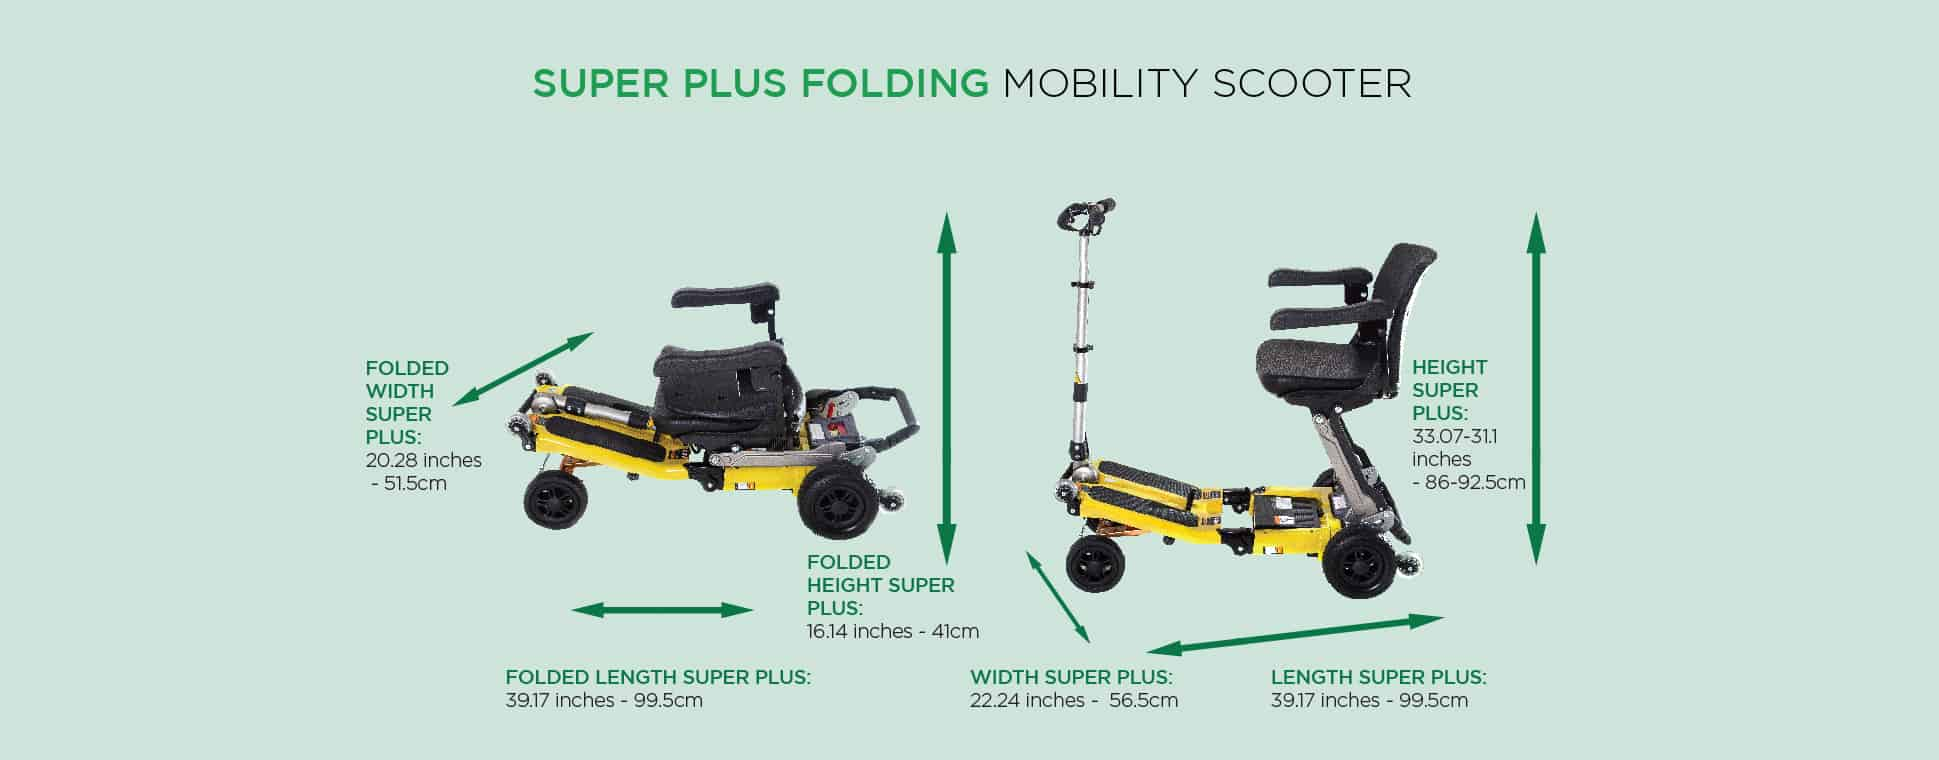 Super Plus Folding Mobility Scooter